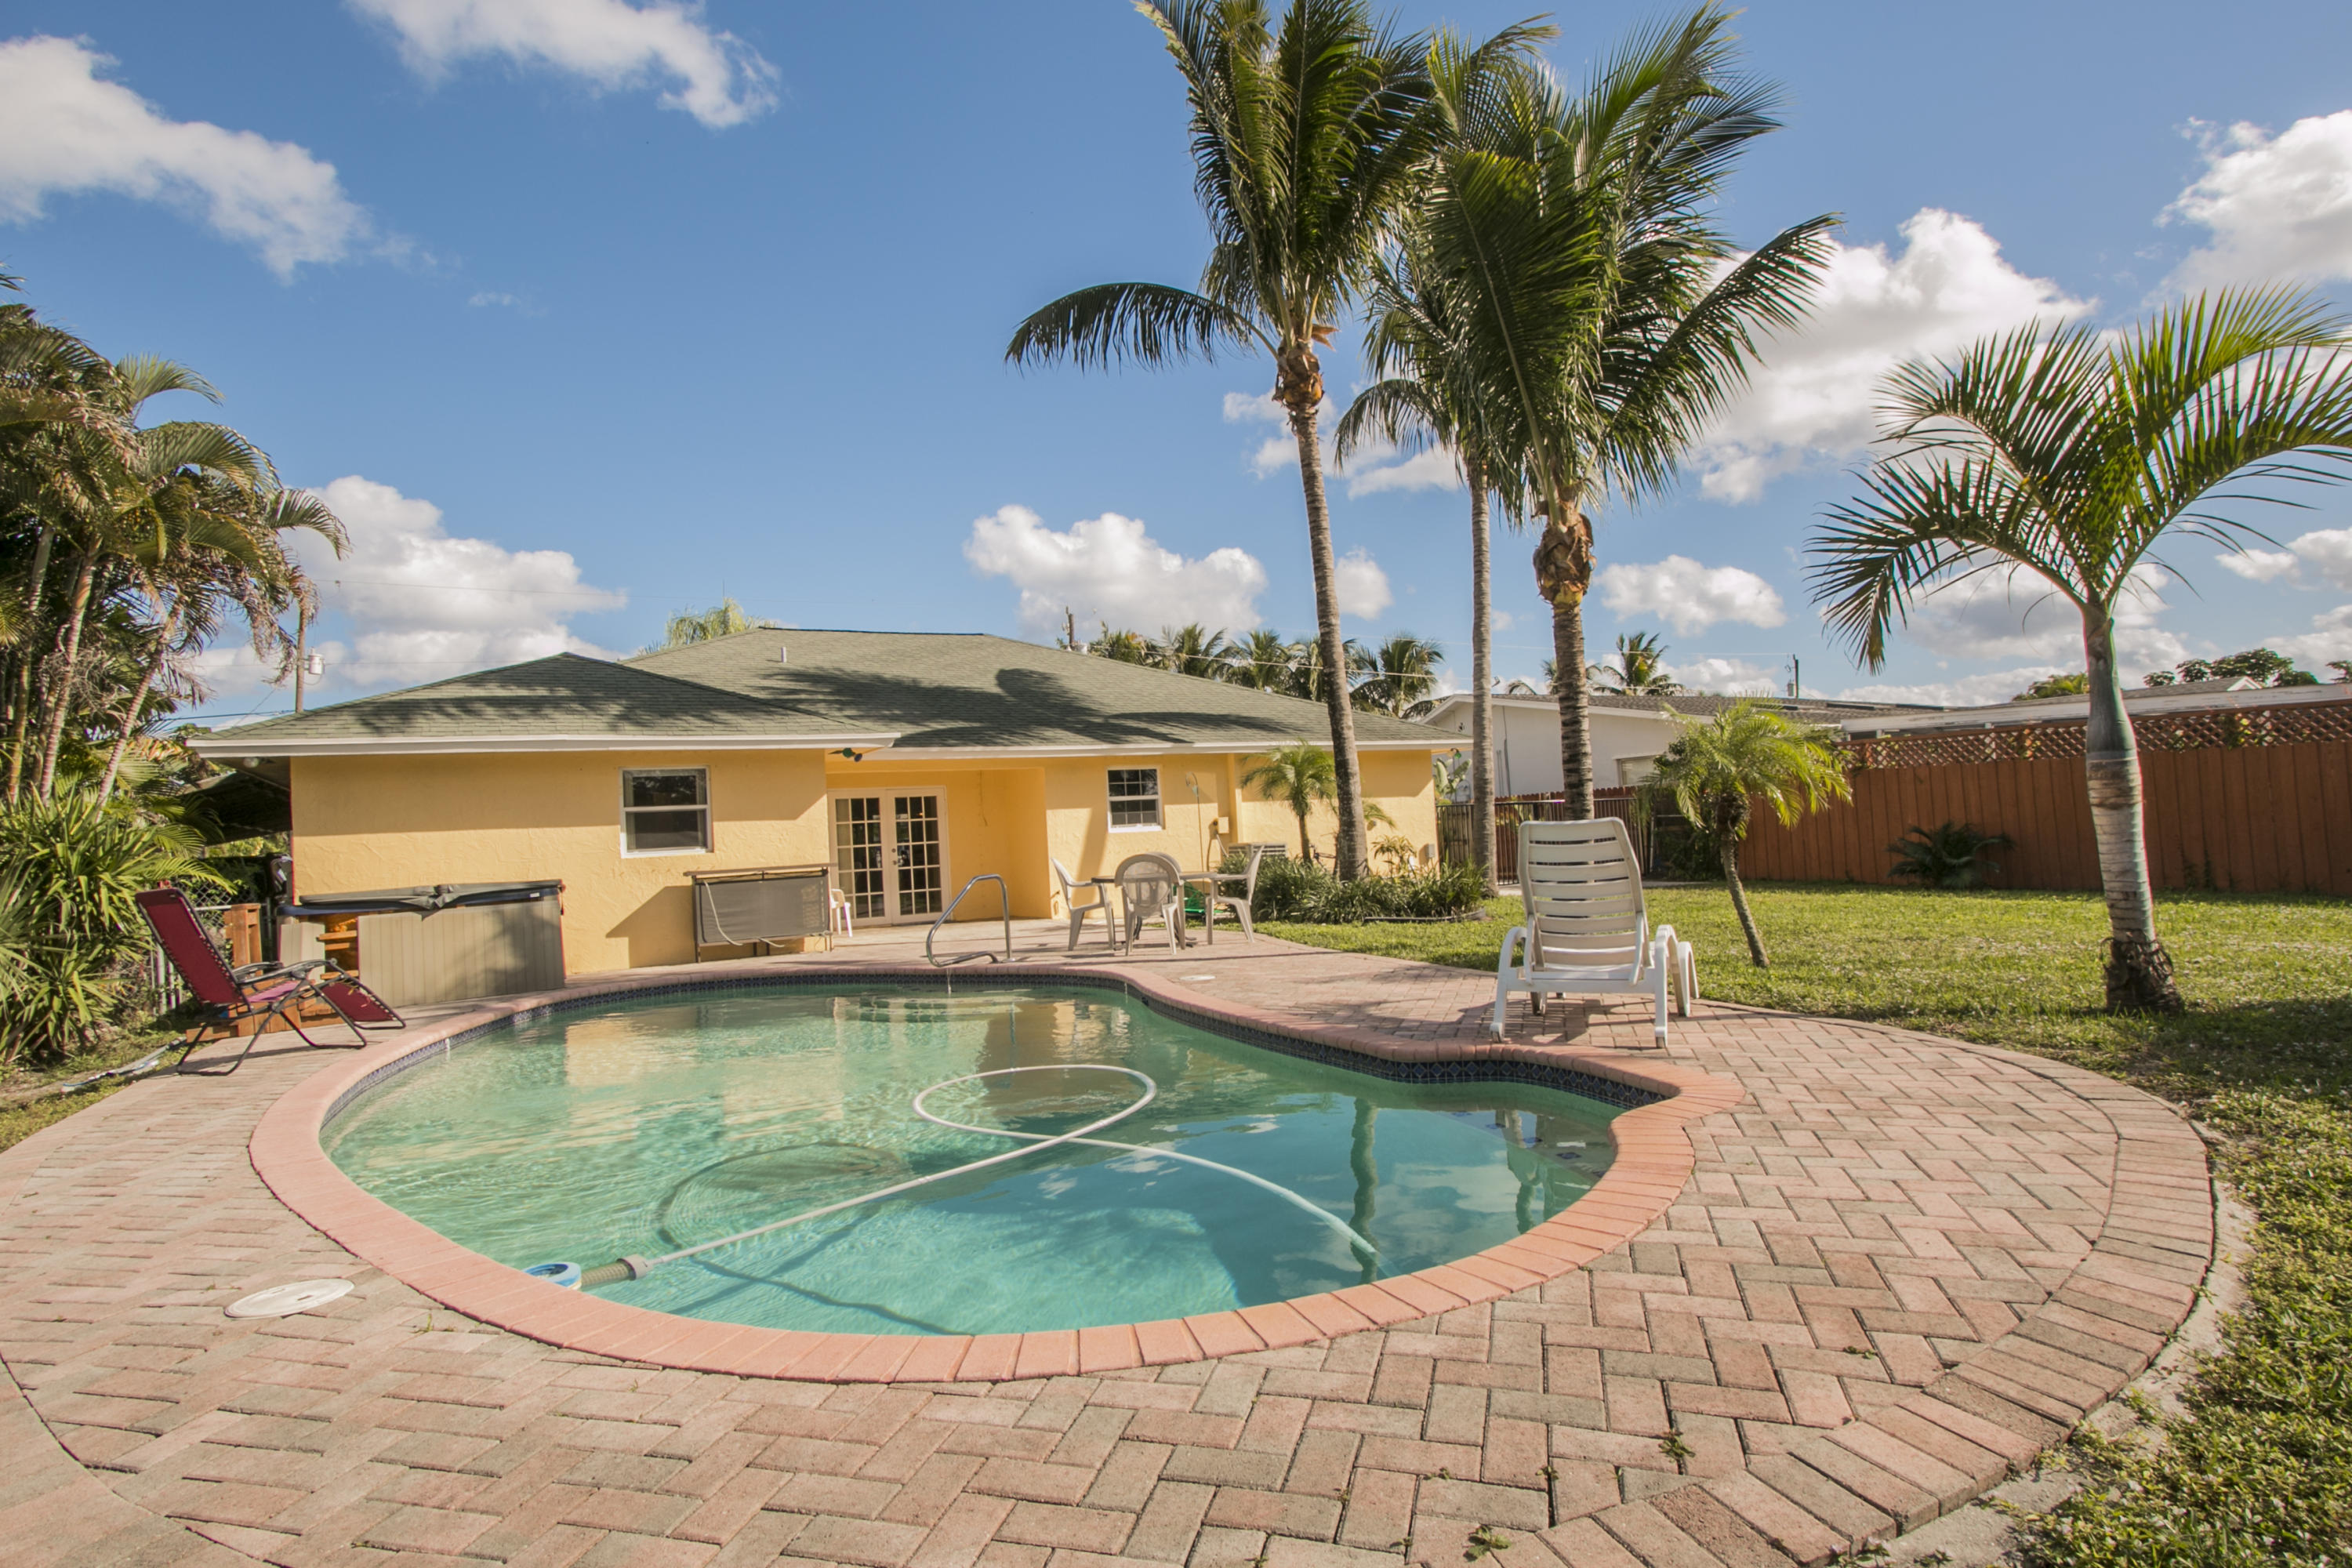 Home for sale in FLORAL PARK LANTANA IN PB 23 PGS 129 &130 Lantana Florida